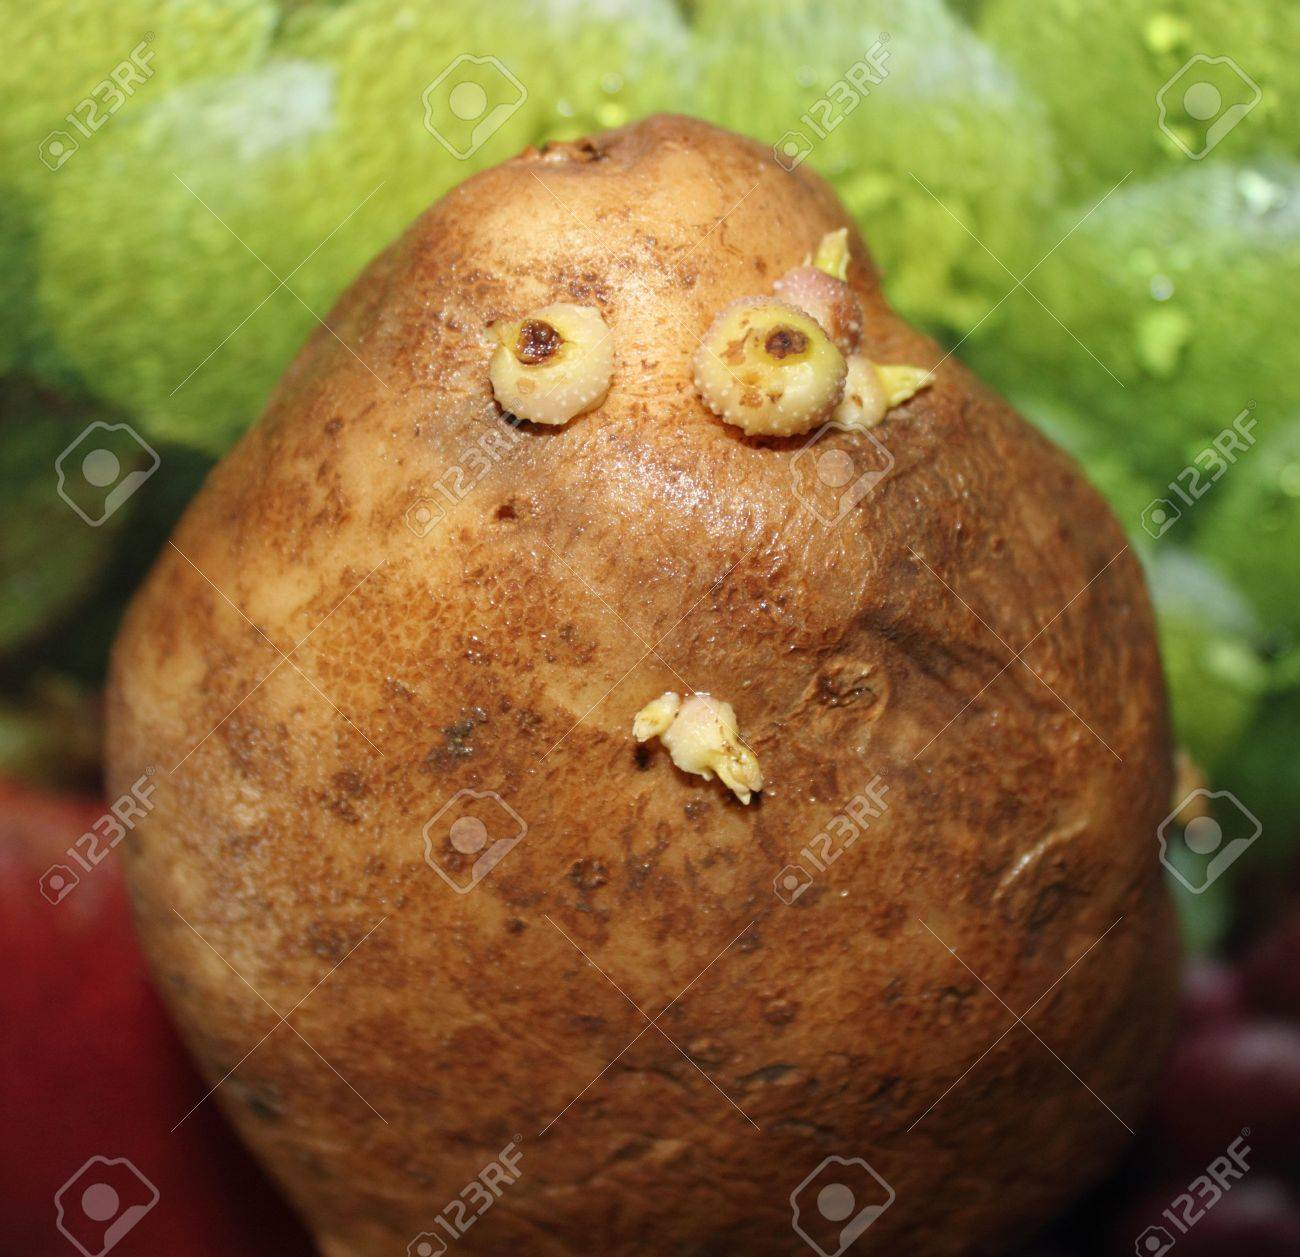 Potato With Eyes And A Mouth On A Bright Background Stock Photo